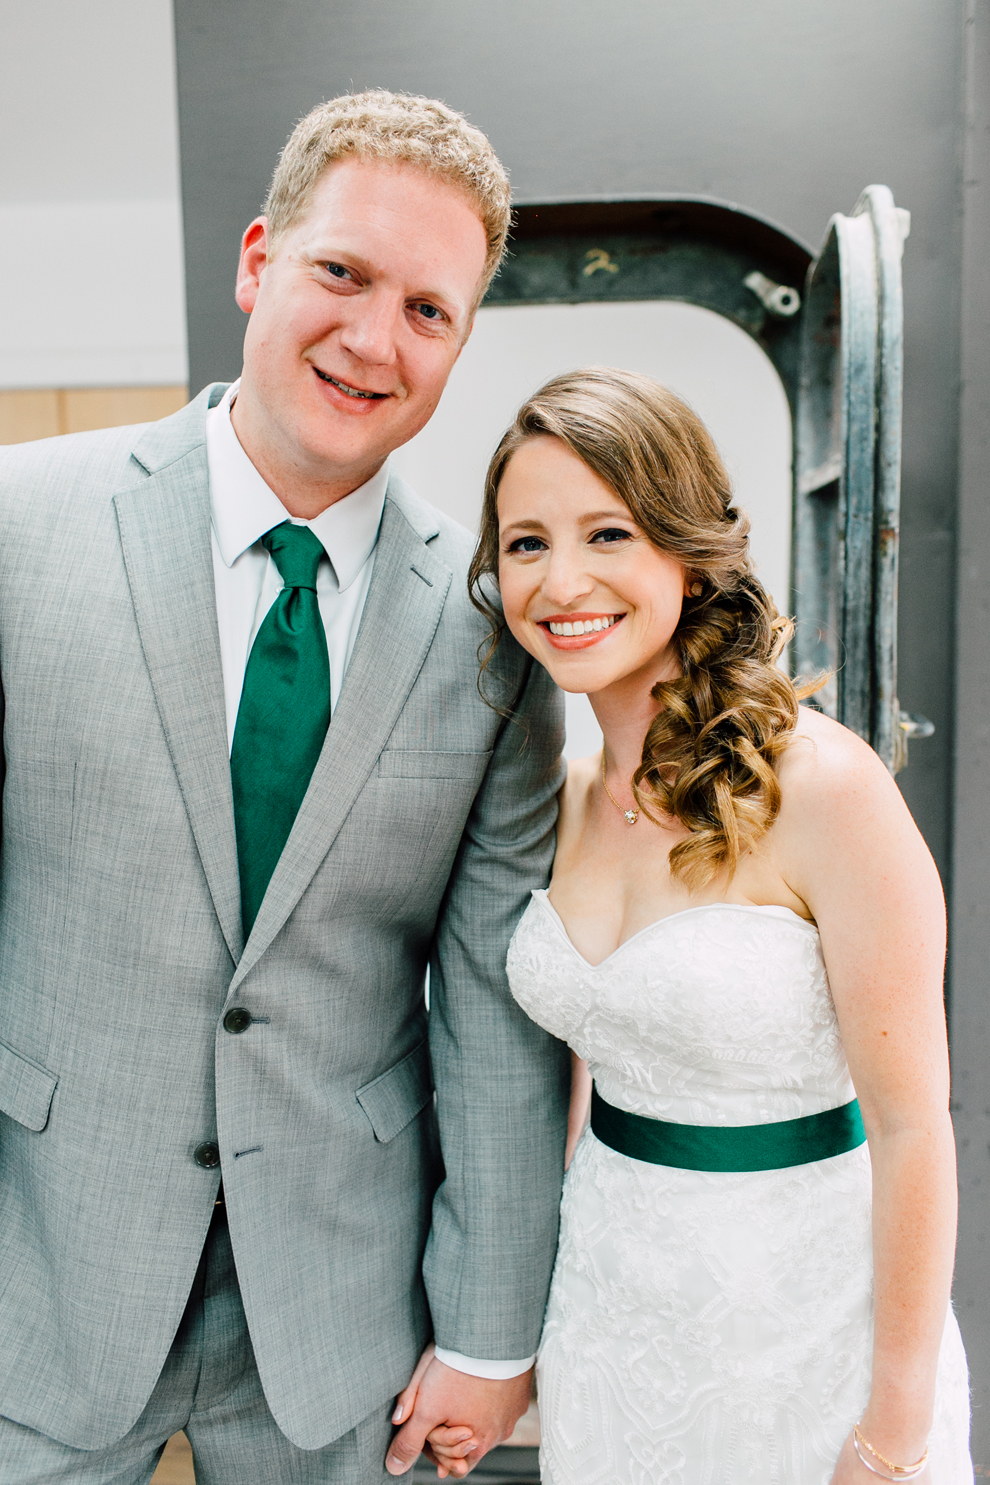 028-fremont-foundry-seattle-wedding-katheryn-moran-photography-anthony-kaitlin.jpg